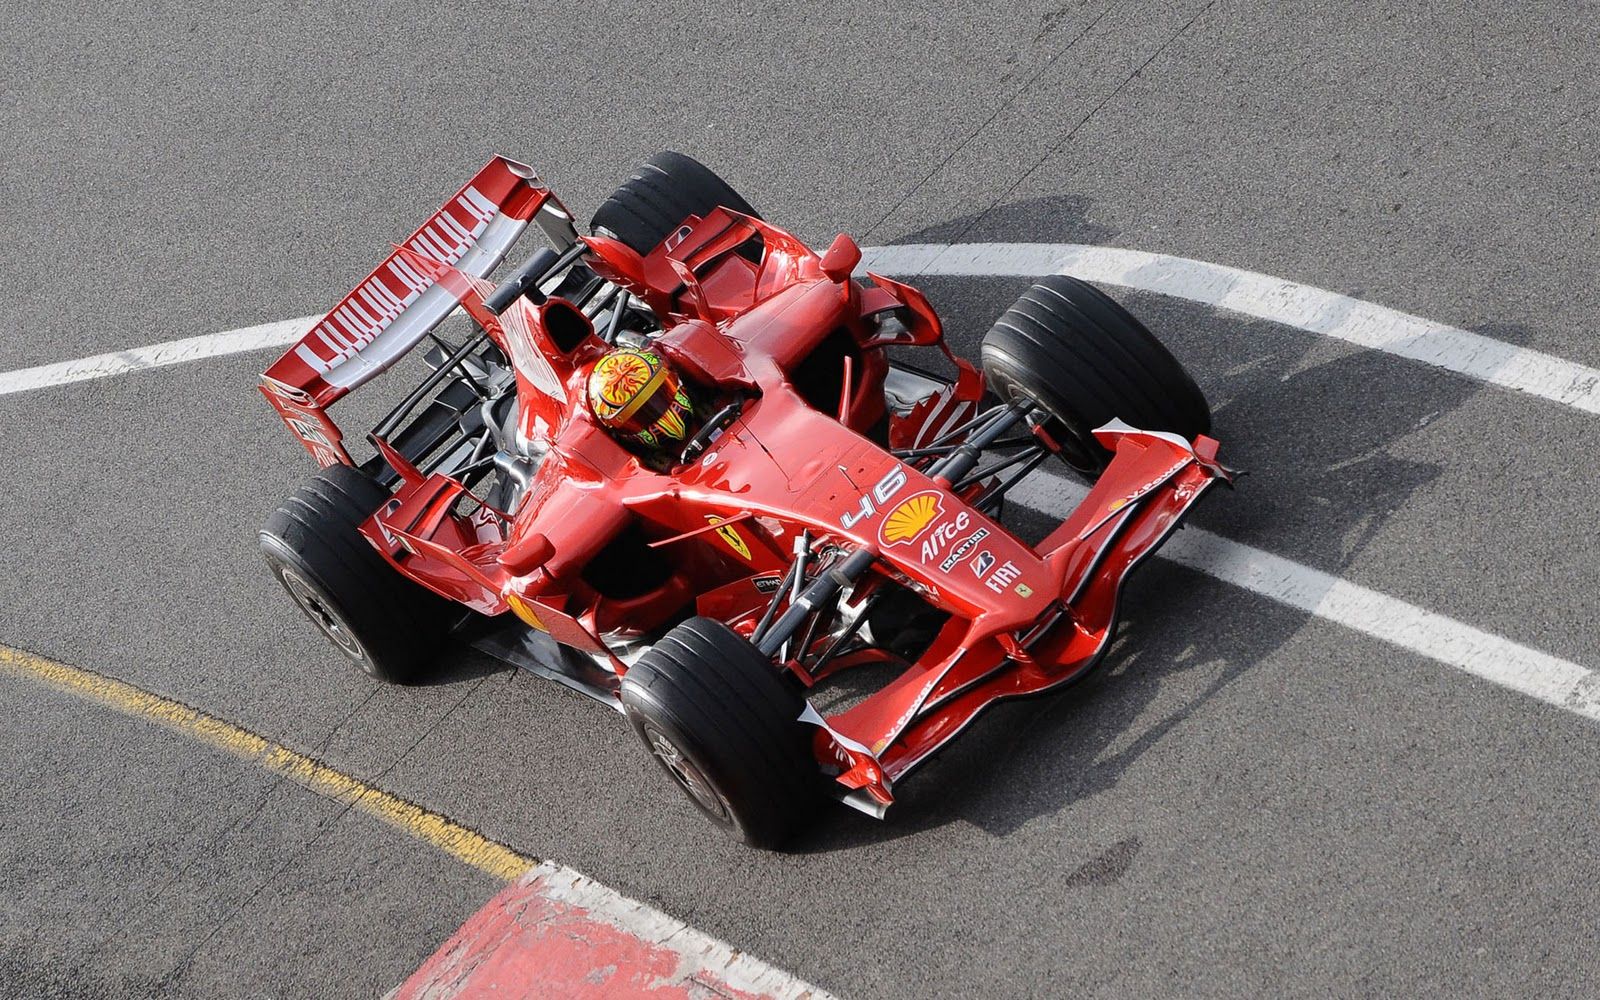 http://3.bp.blogspot.com/-m4N2ARe08zE/To80vt31knI/AAAAAAAAAH8/aslhJldVYhM/s1600/ferrari-rossi-test-f1-wallpaper-1.jpg